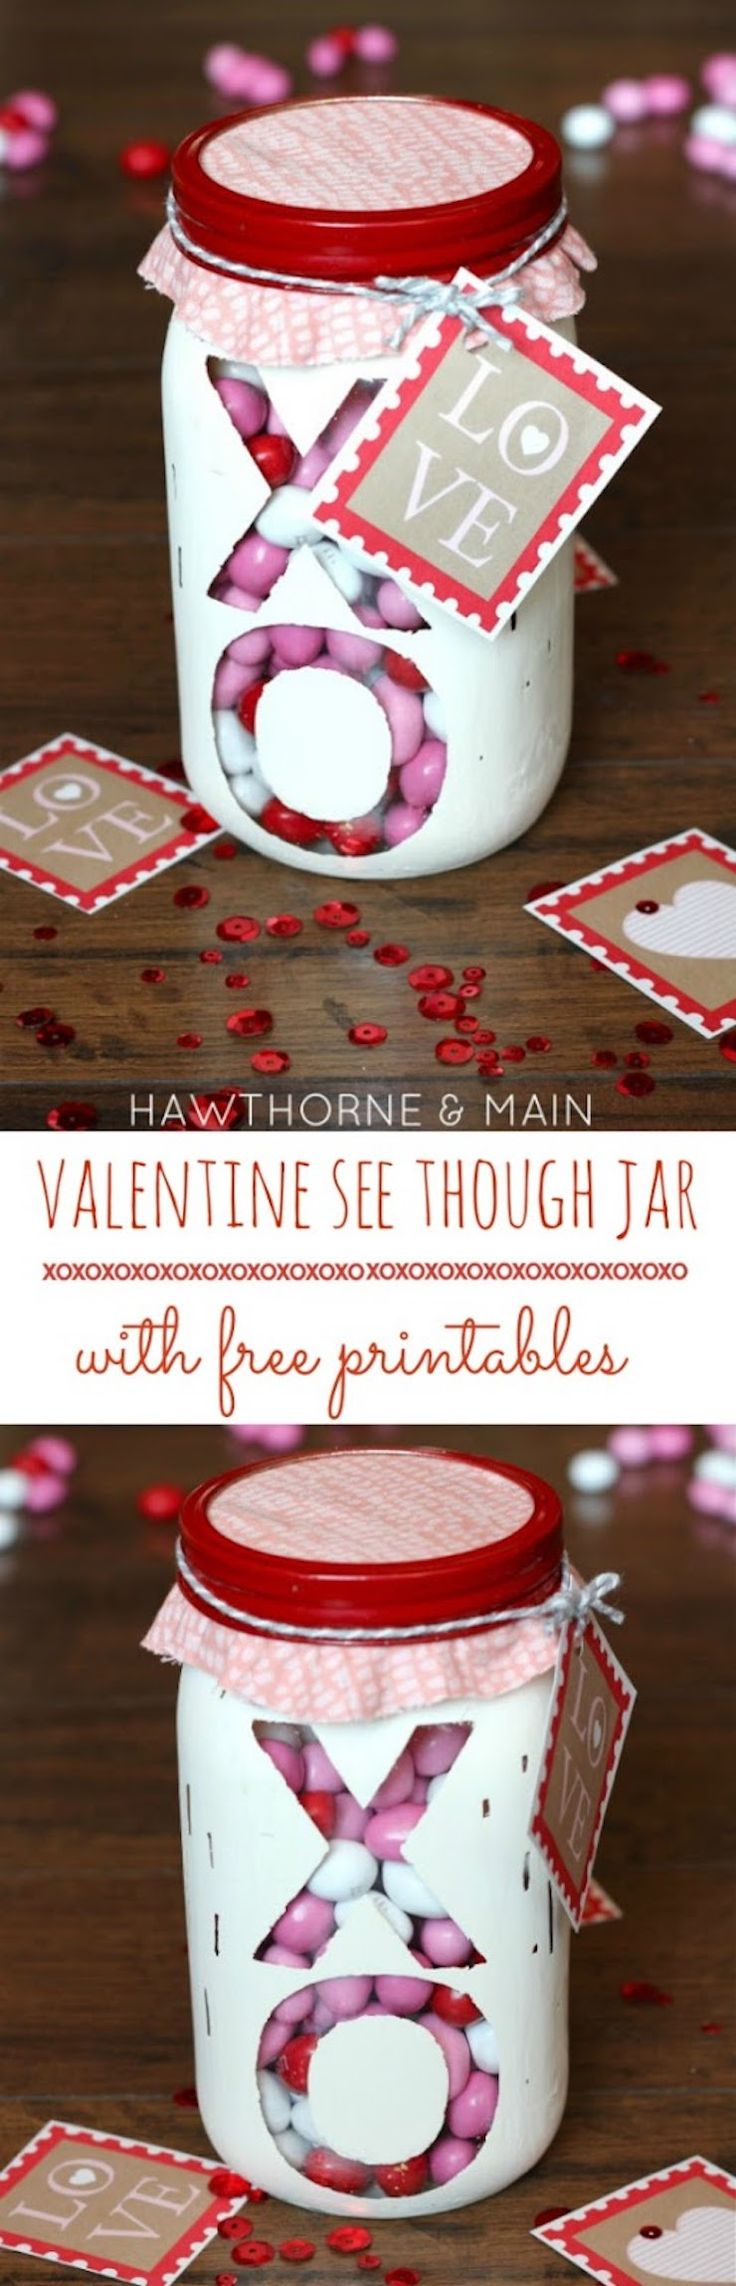 Valentine's Day Mason Jar - an easy DIY Valentine's Day gift. Fill with your favorite red pink and white candy!